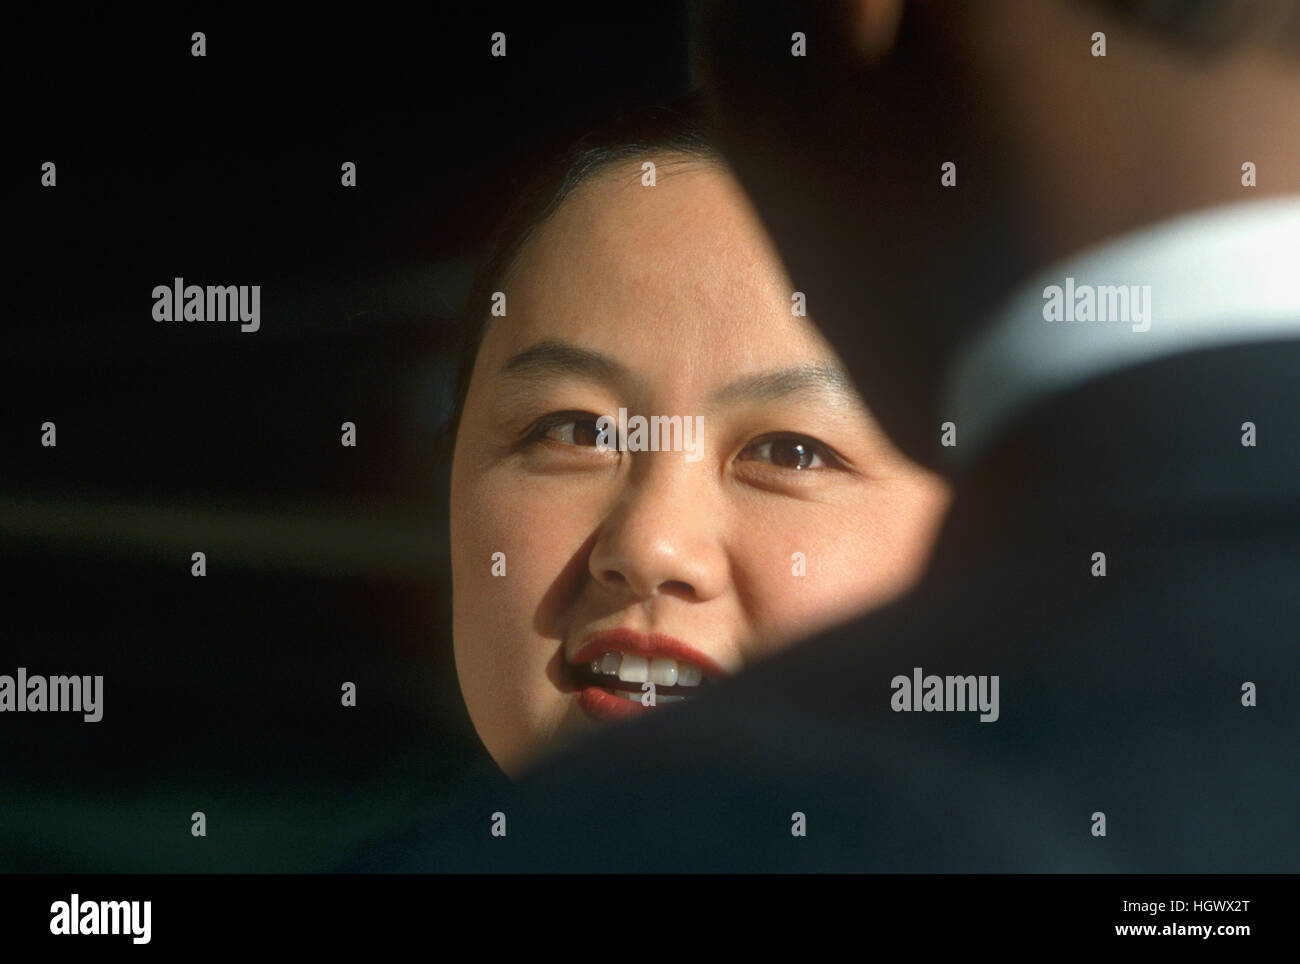 Businesswoman talking - Stock Image